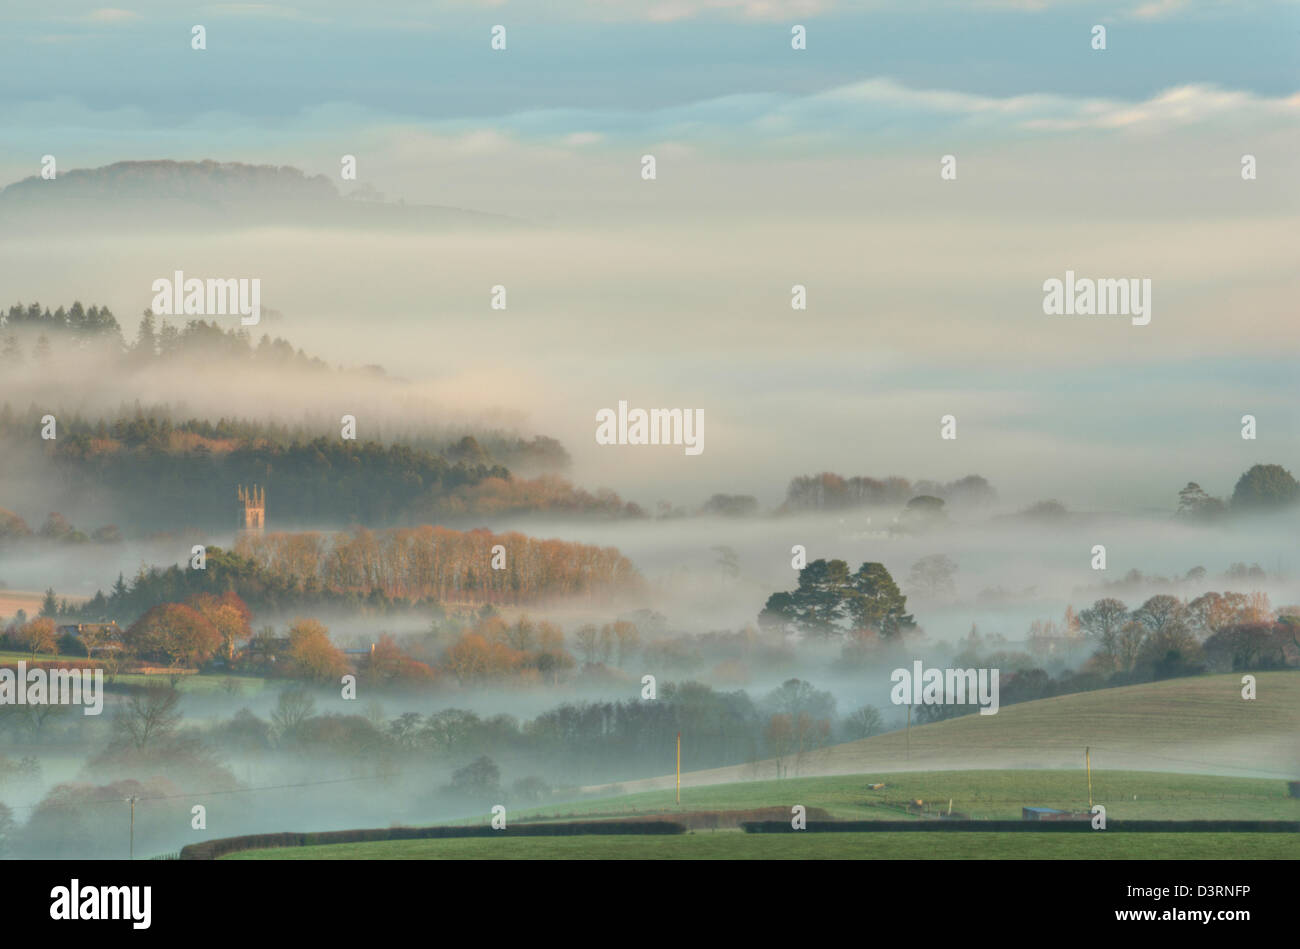 the tower of St Mary's Church at Dartington bathed in the first light of a winter's morning. Stock Photo